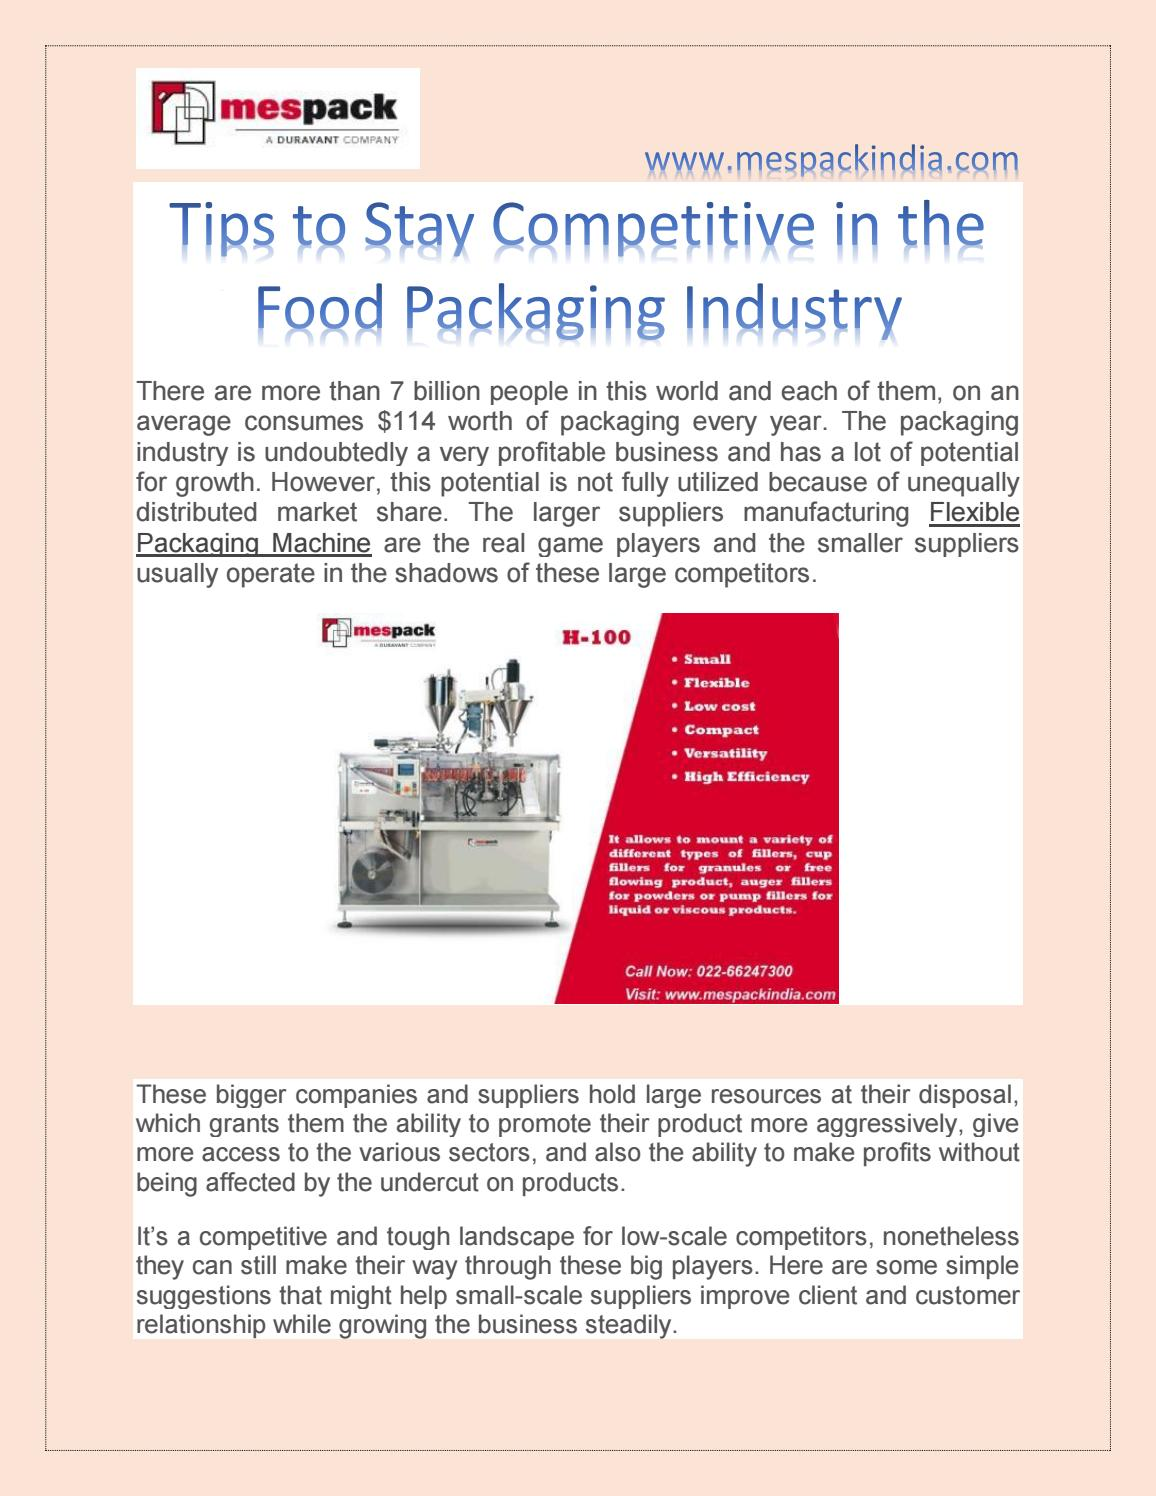 Tips to Stay Competitive in the Food Packaging Industry by